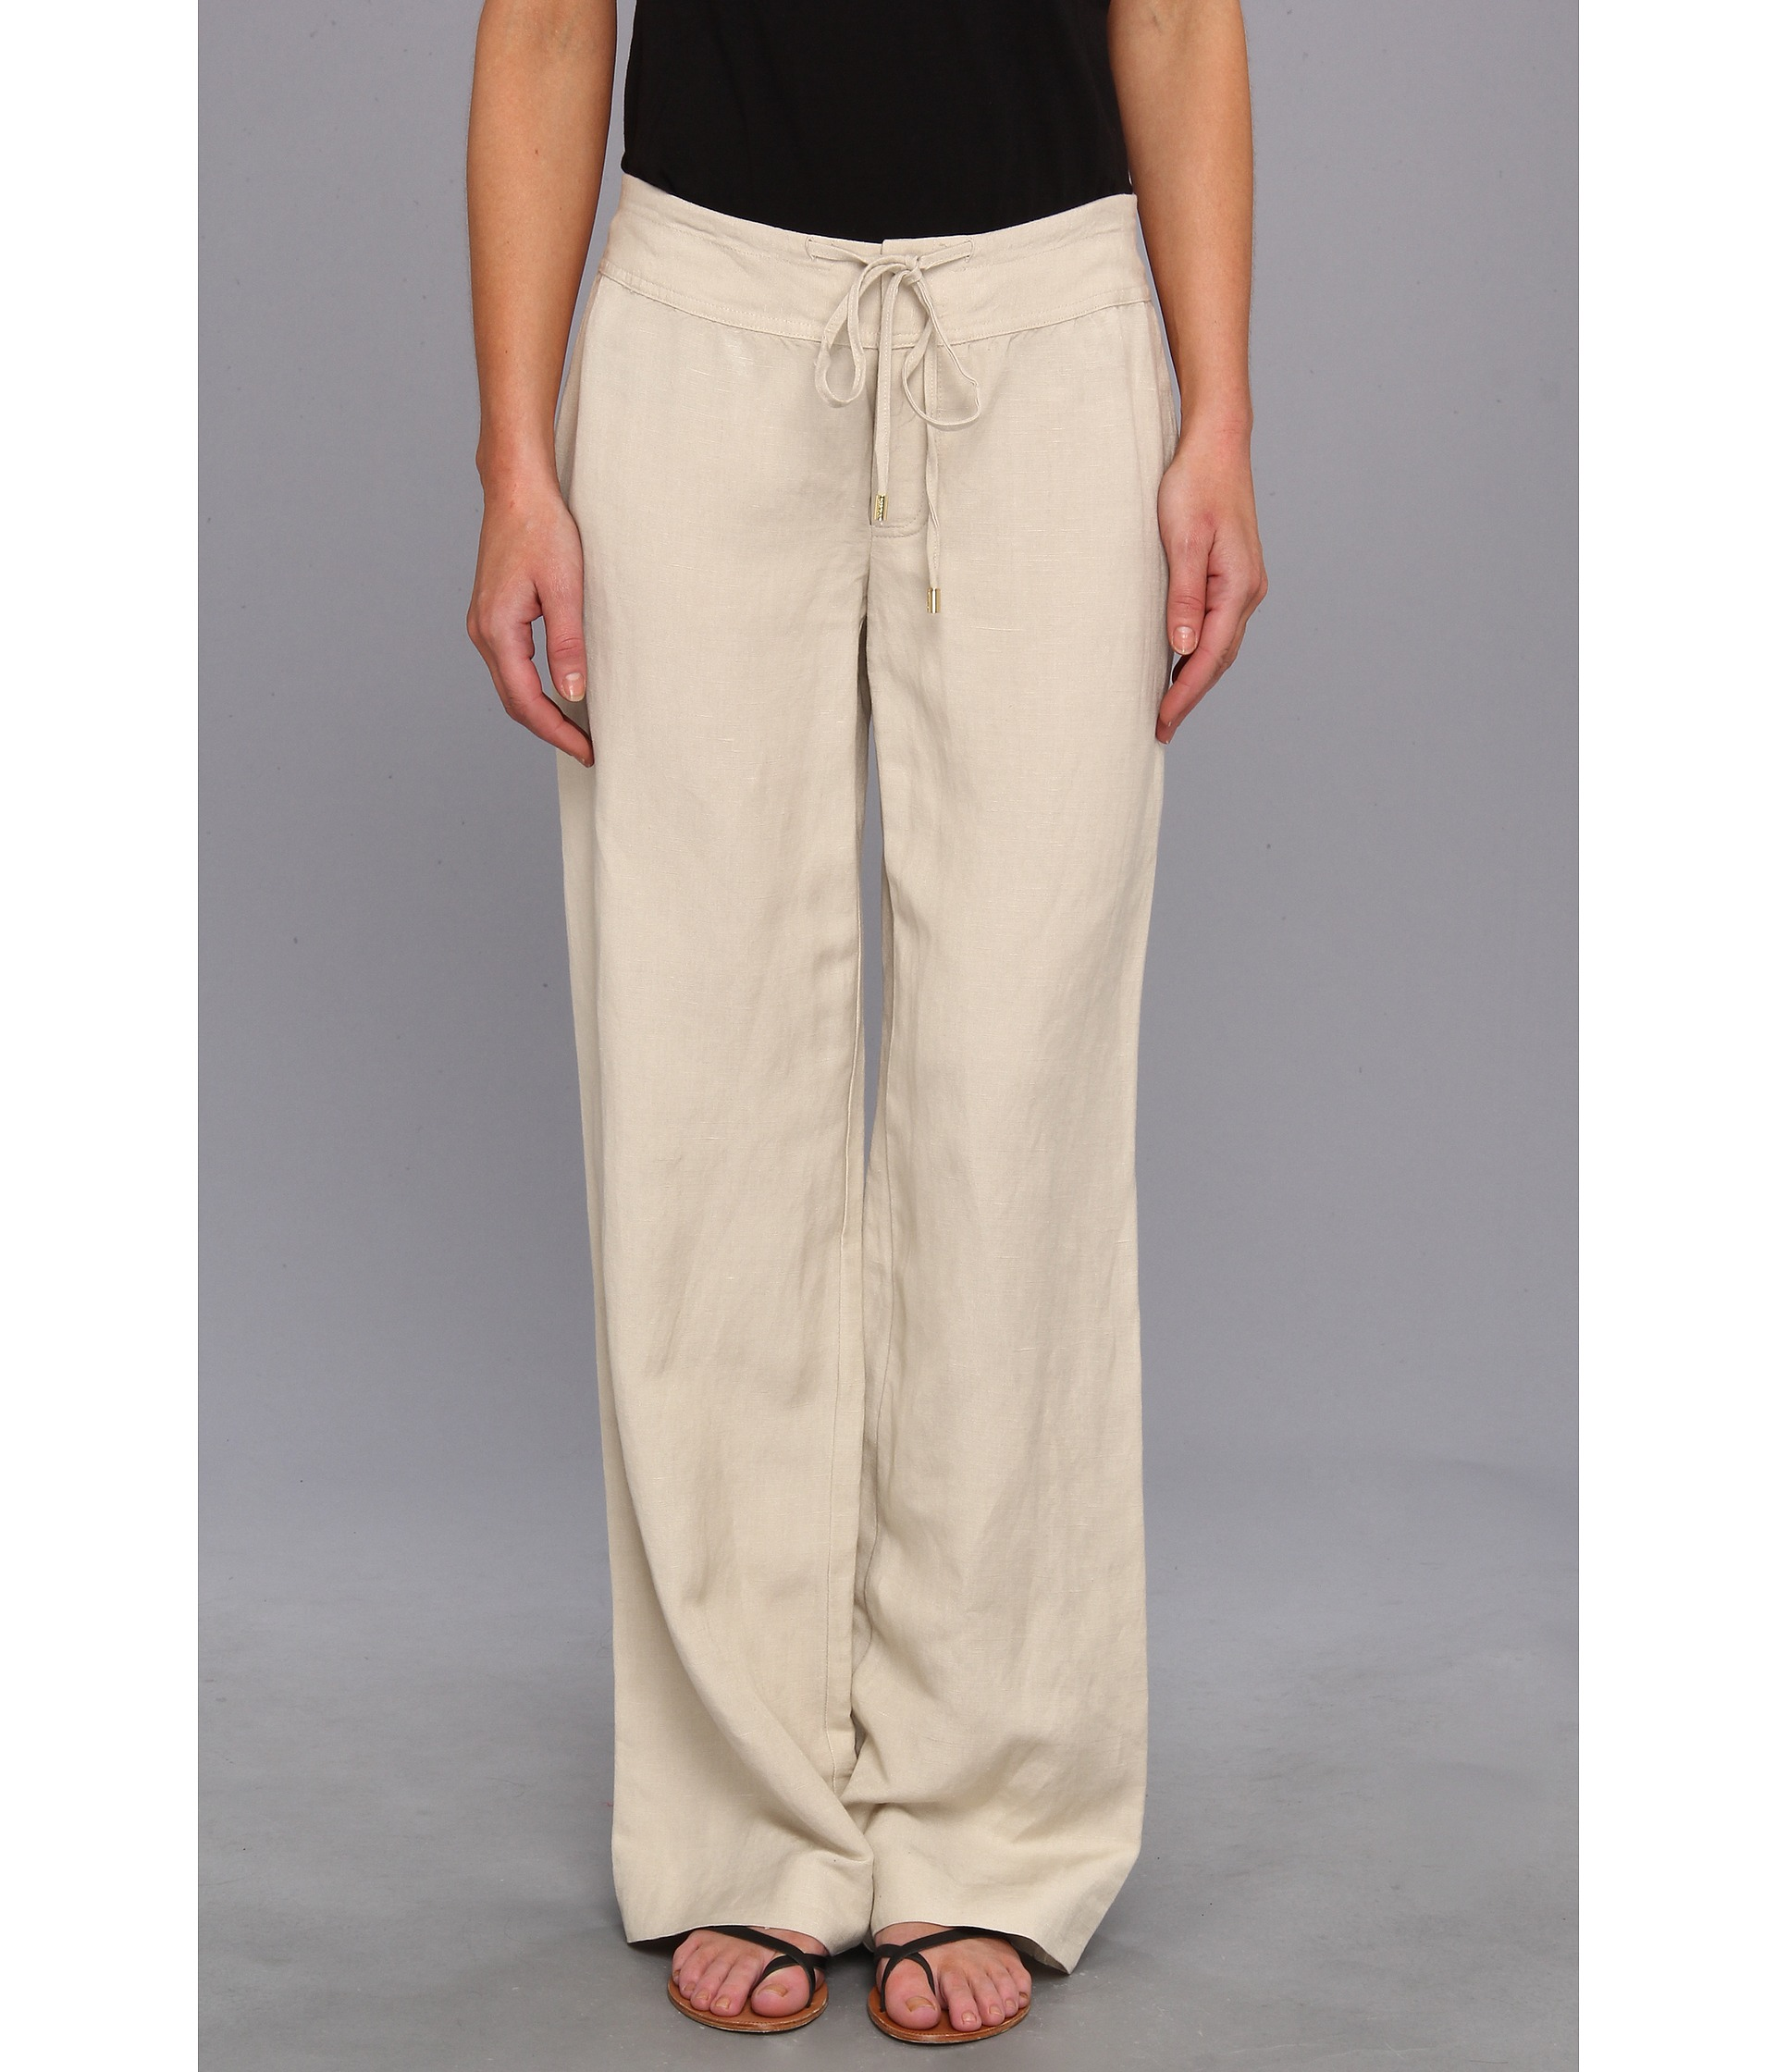 Popular Elastic At The Back Waist,side Seam Pocket Fabric100%Linen ColorsGray Strip,Khaki Strip Size Waist66cm90cm  26&quot354&quotHip160cm  63&quotPants Length 82cm  323&quot Laylaliu 8 Mins Ago Elastic At The Back Waist,side Seam Pocket